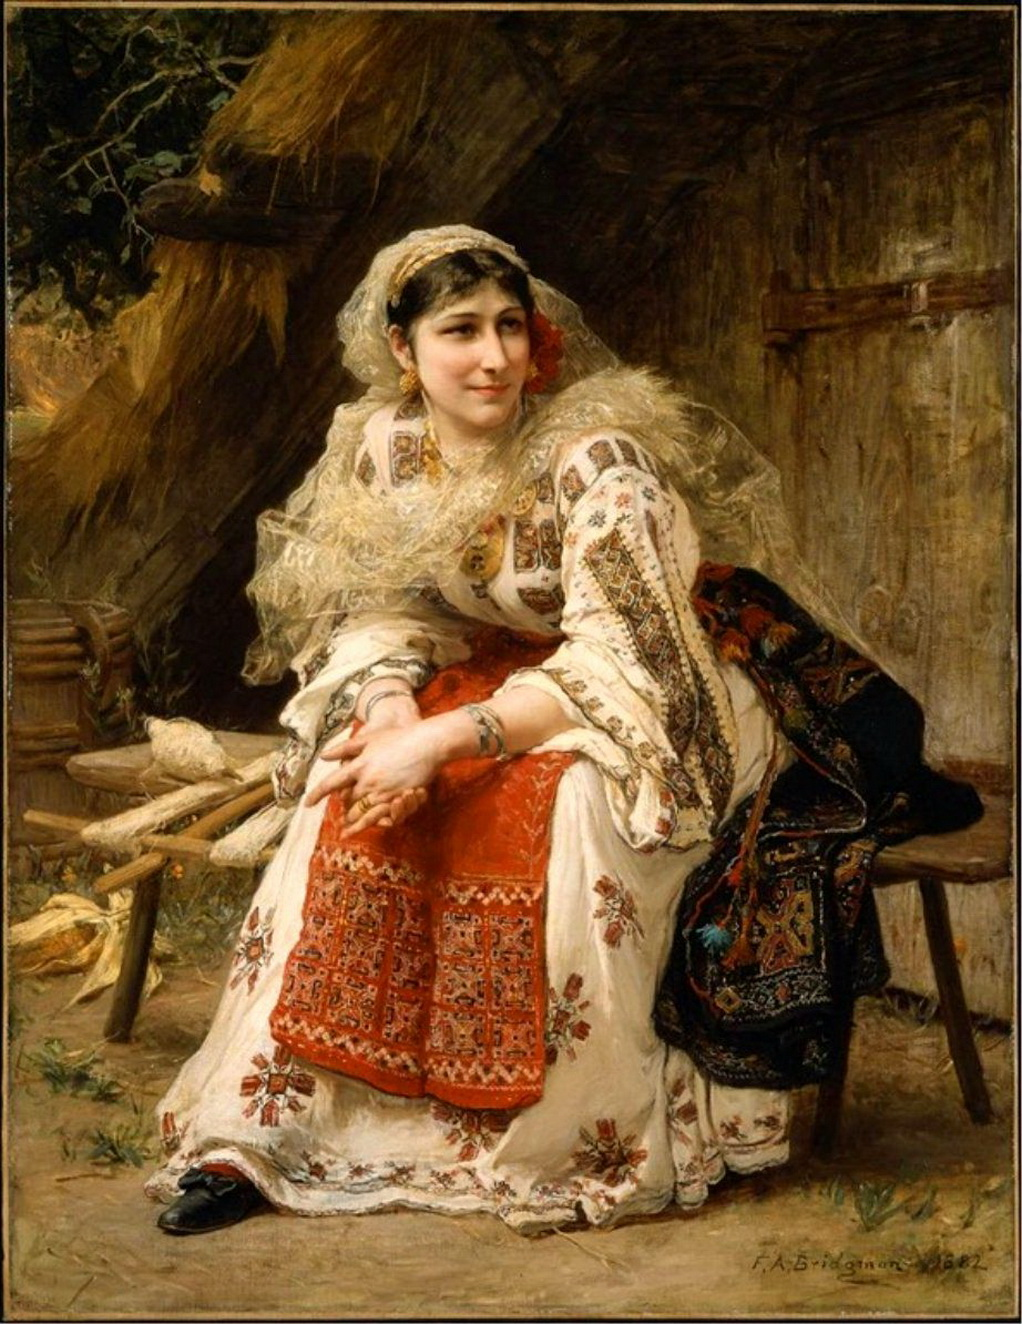 Armenian Woman by Frederick Arthur Bridgman 1882-2